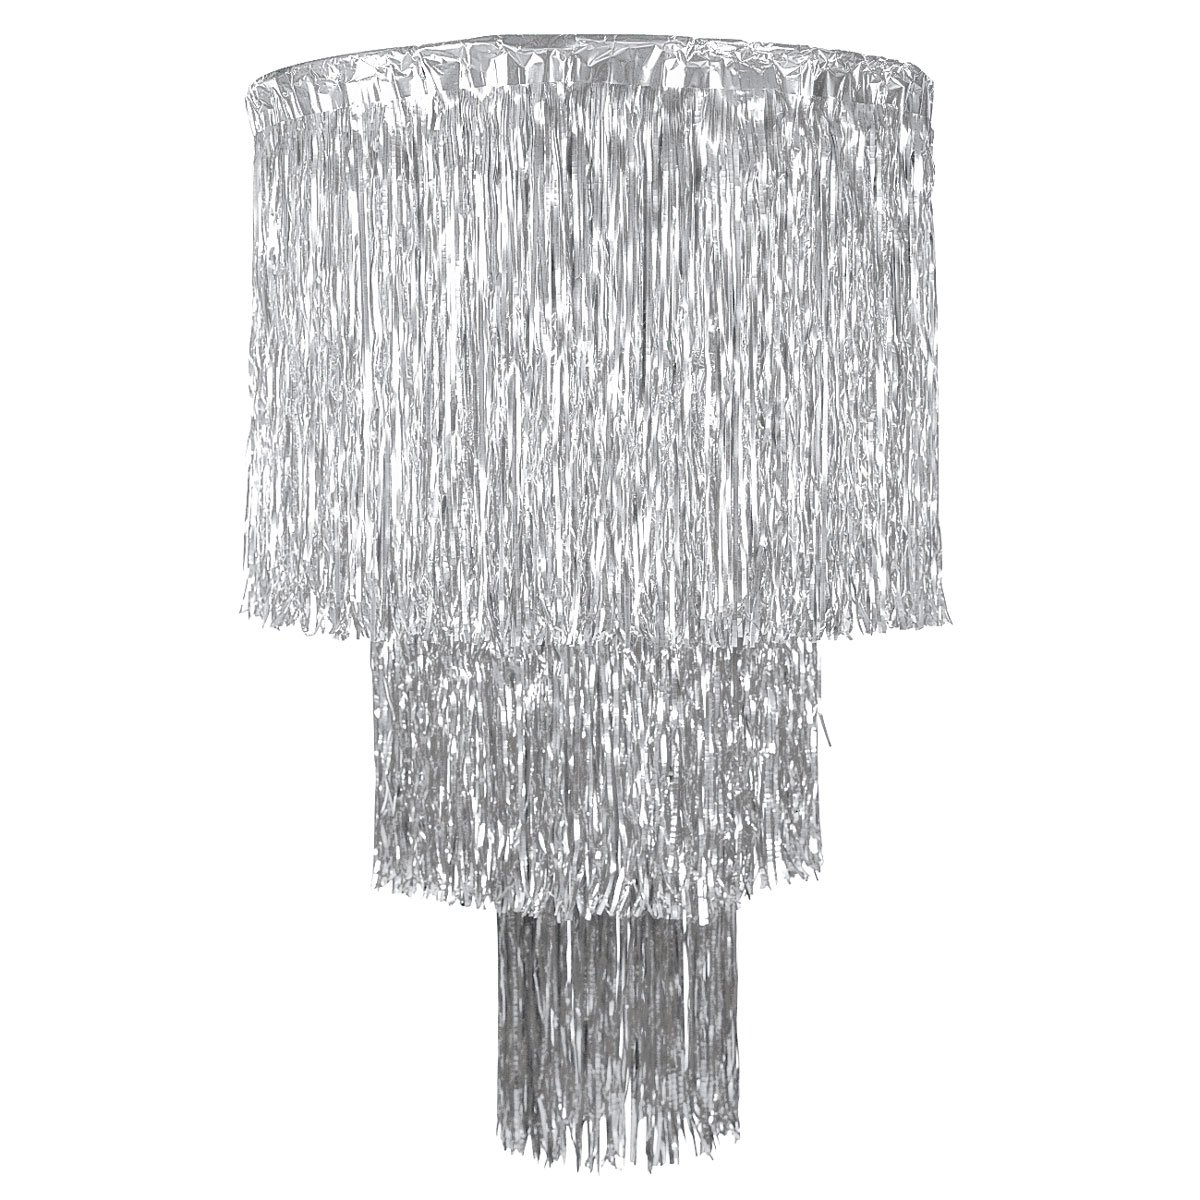 Silver Three-Tier Metallic Fringe Chandelier Prom Decoration, 48 Inches High x 33 Inches Wide